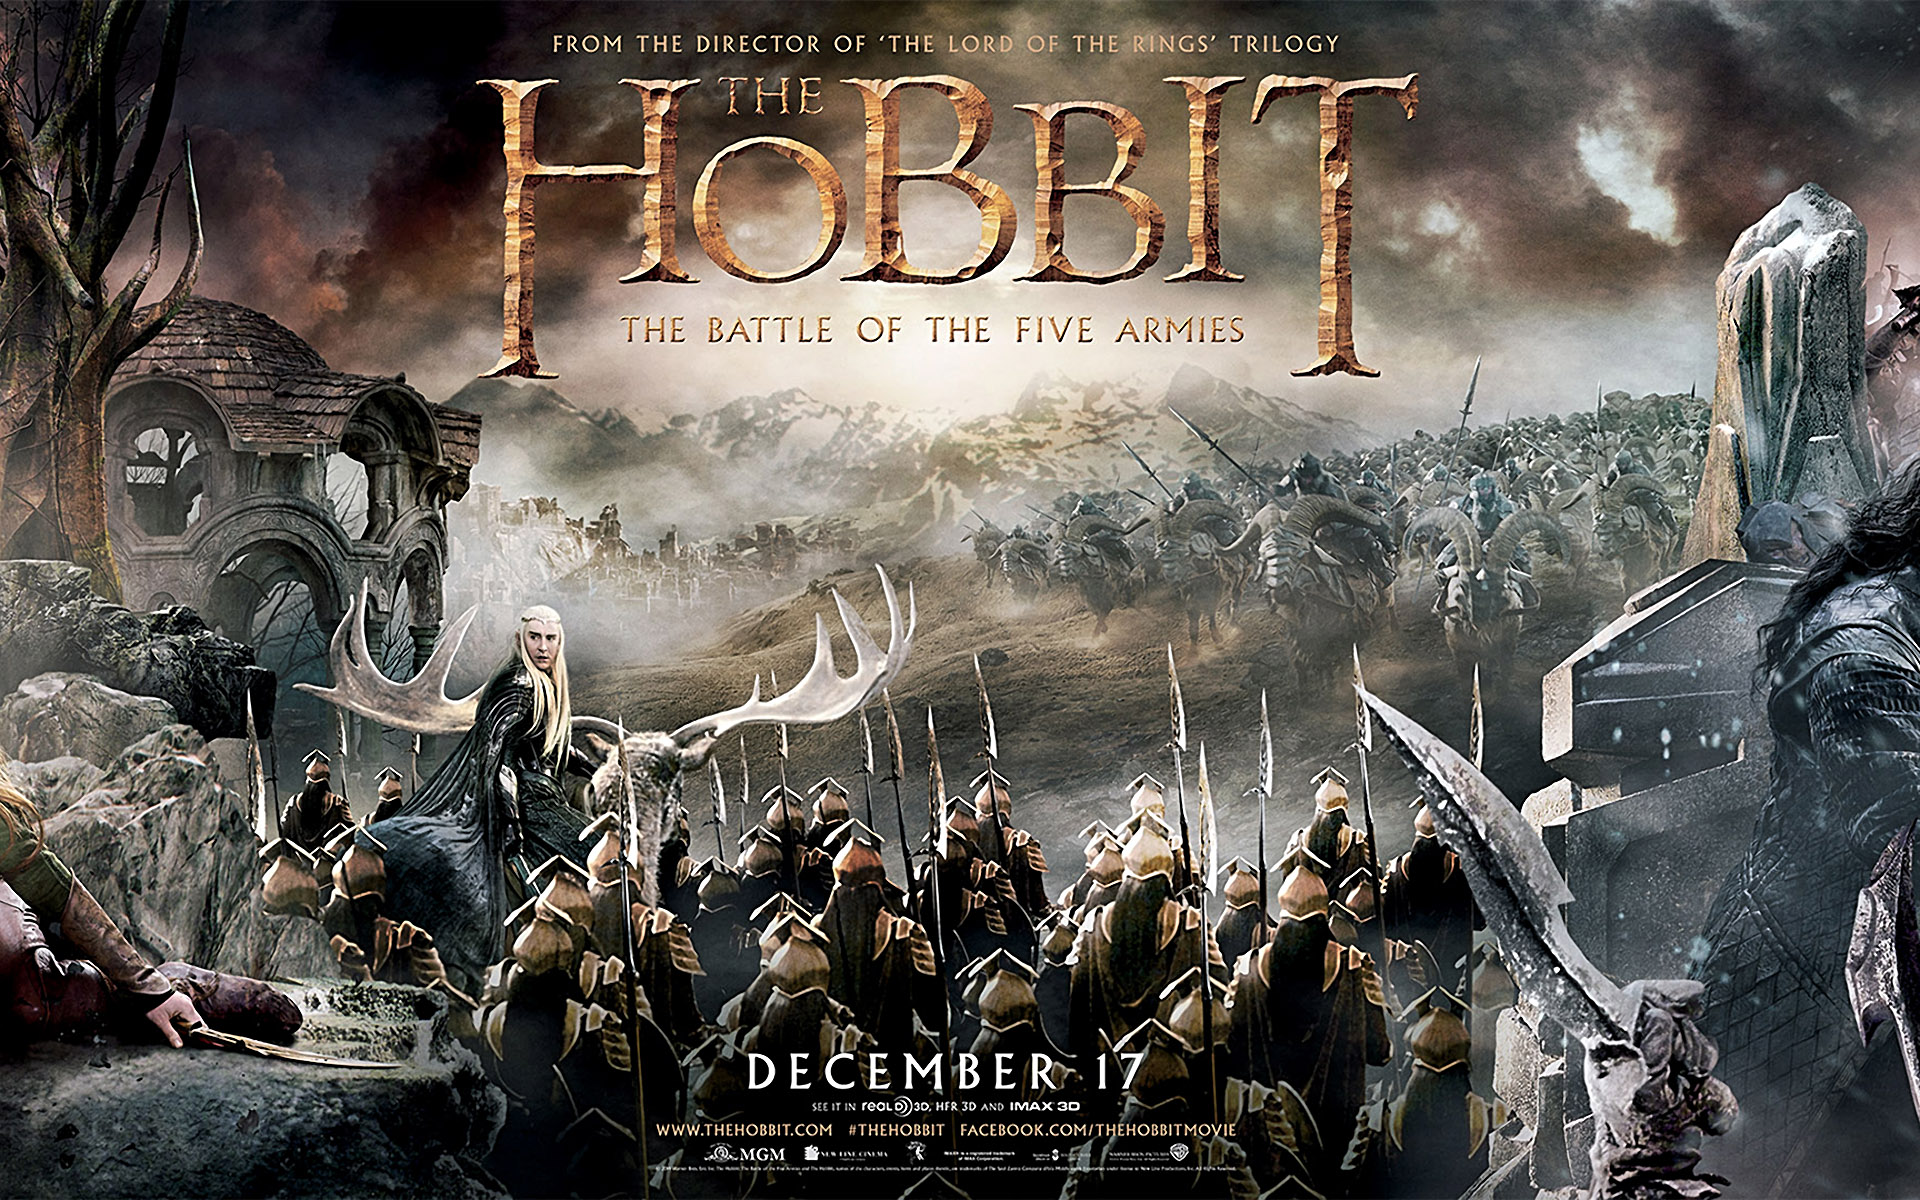 The Hobbit (The Battle of the Five Armies)